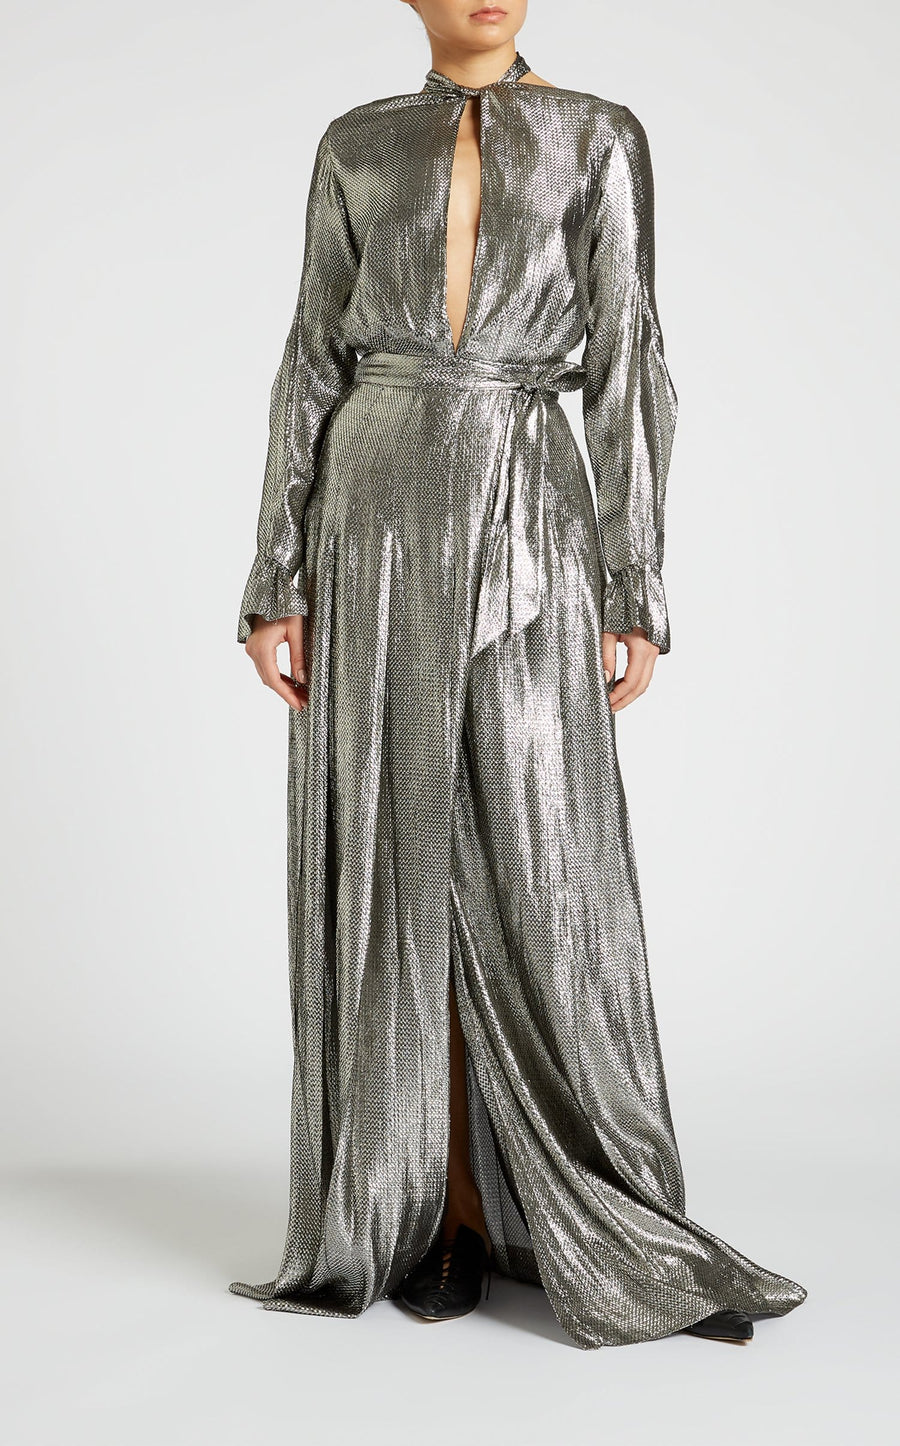 Velero Gown In Silver from Roland Mouret